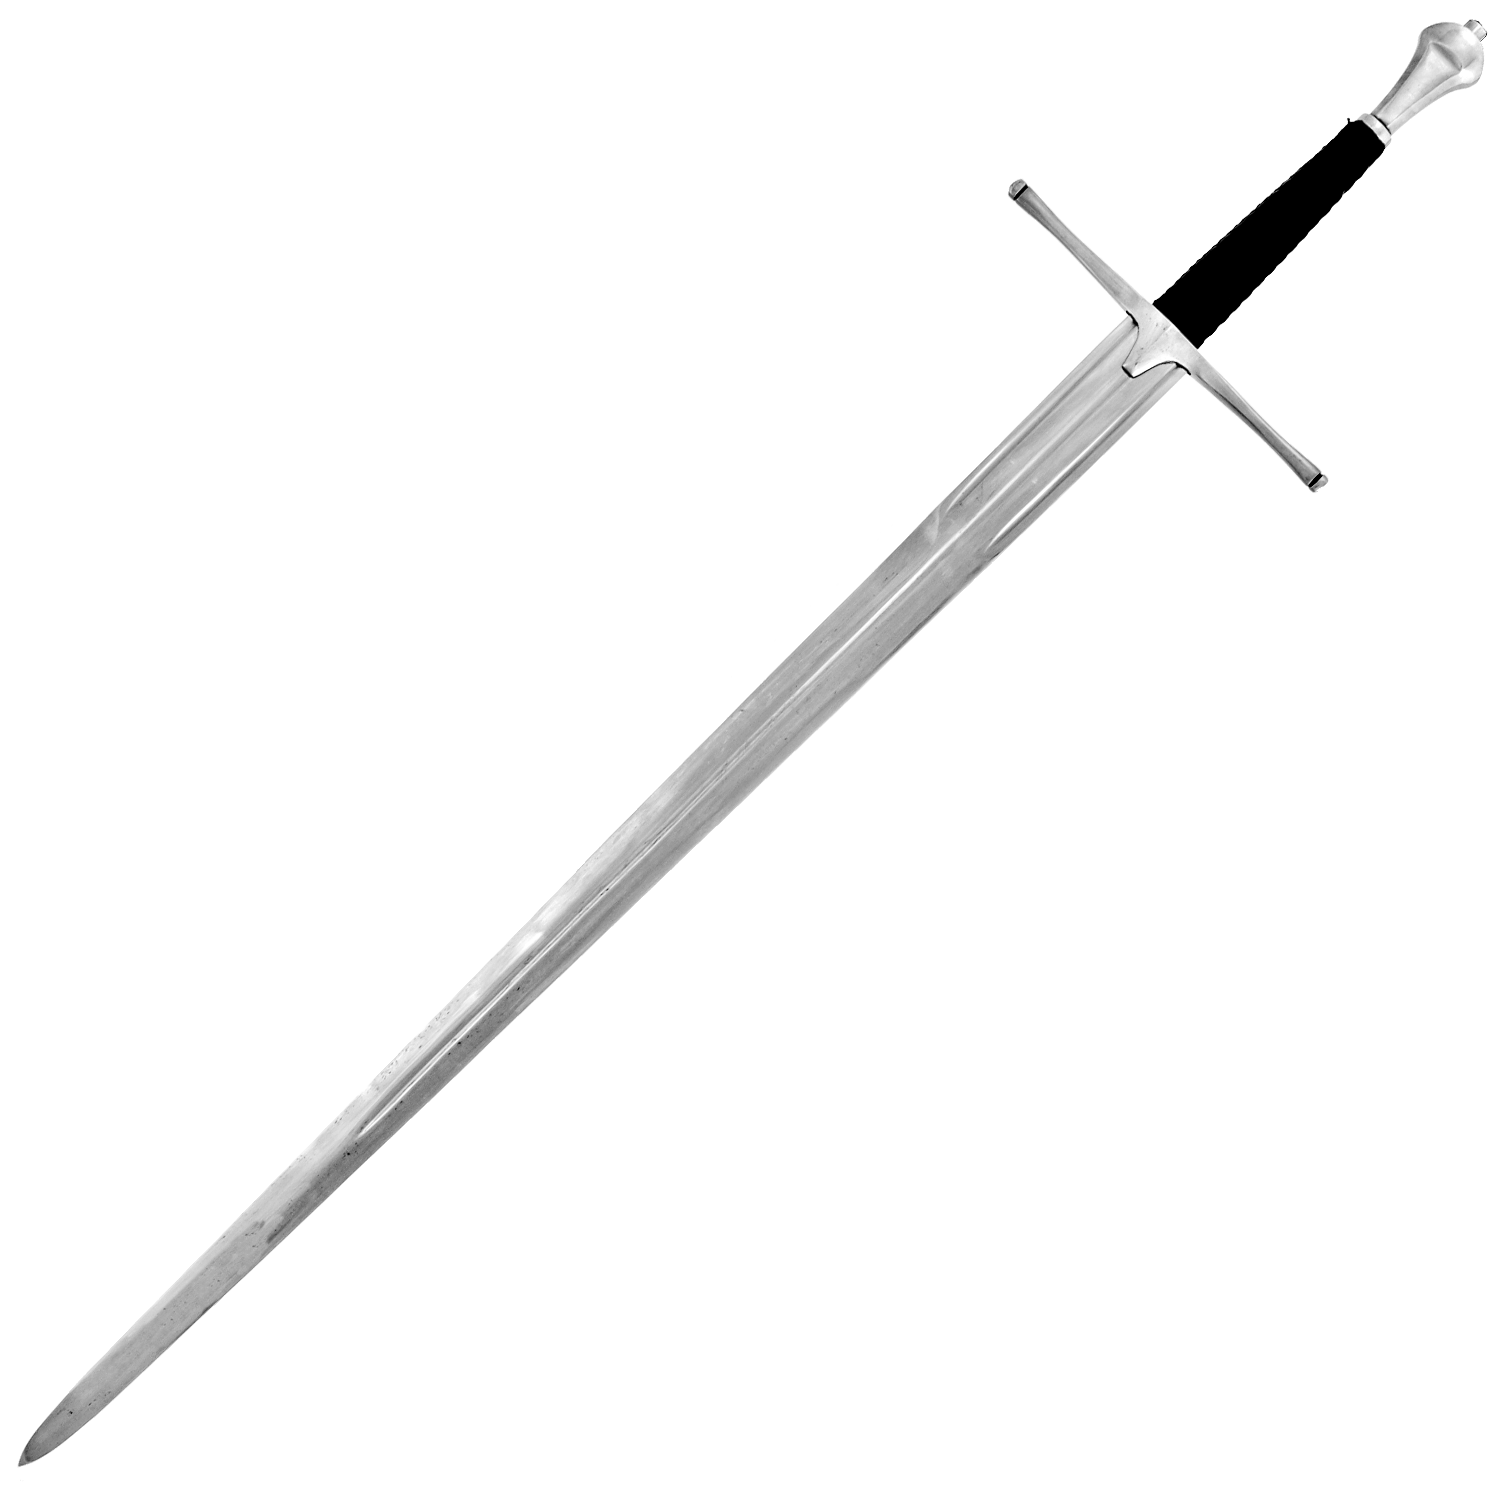 Image result for steel. Longsword drawing png free stock